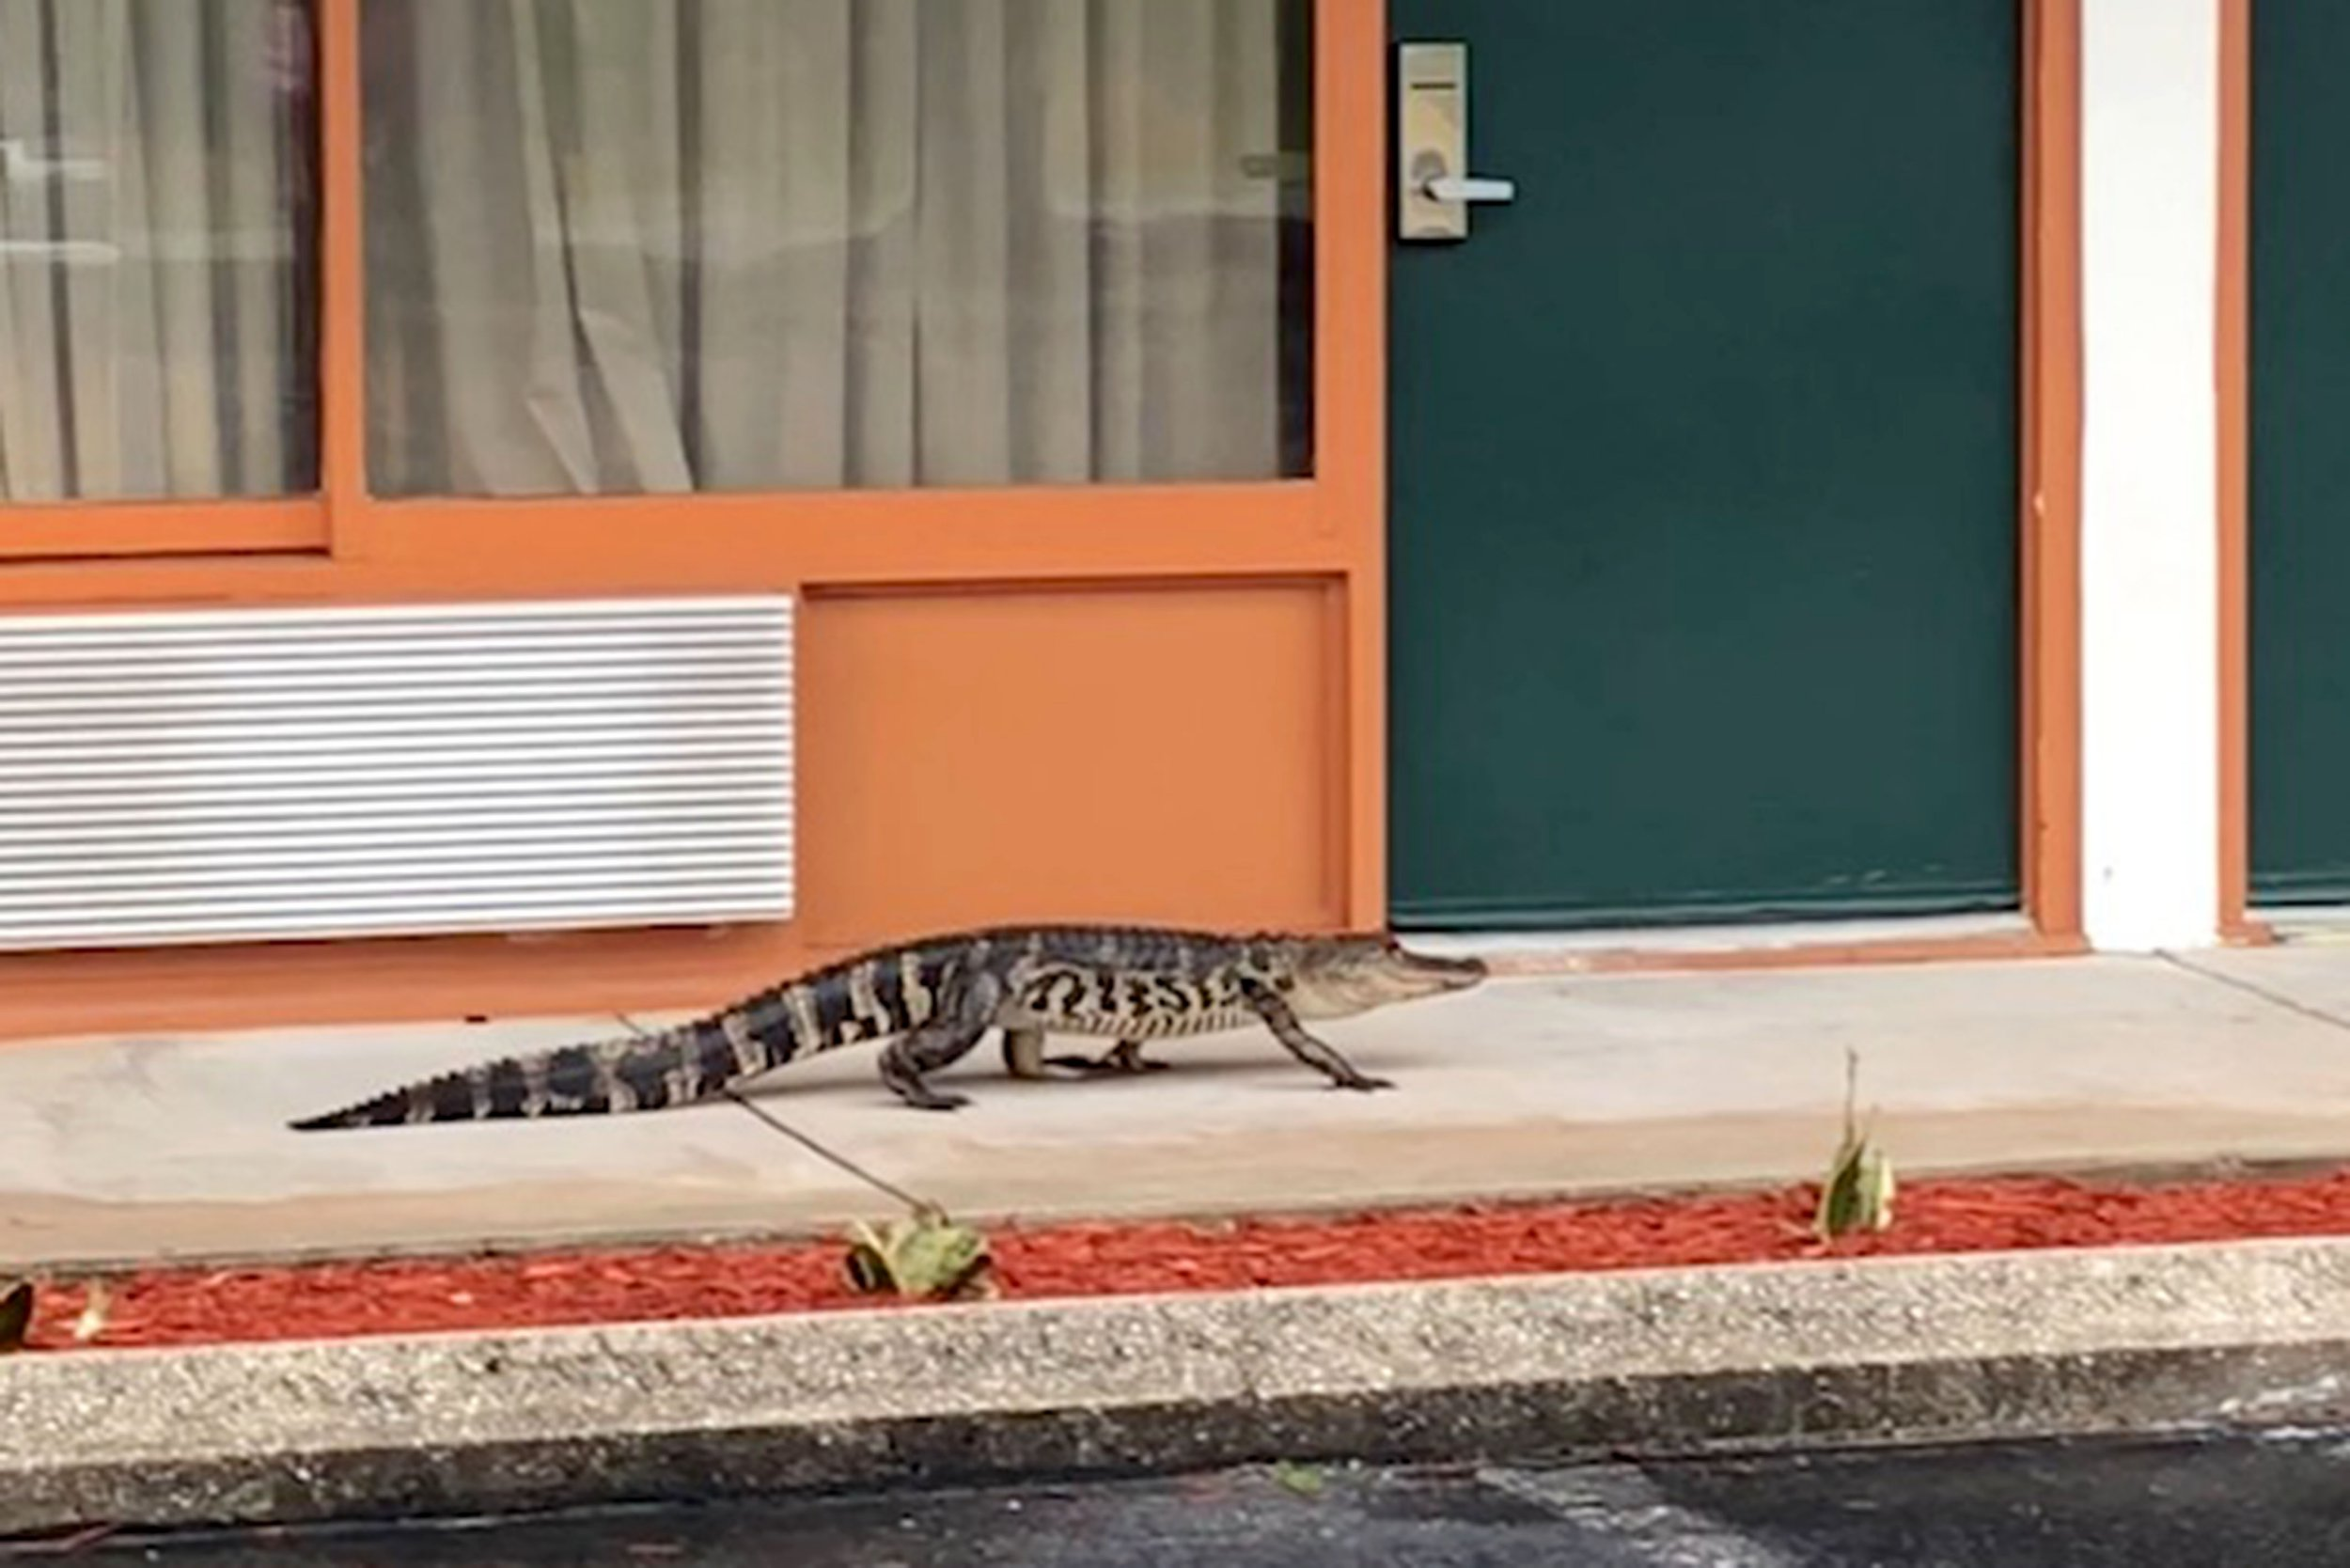 PIC FROM Caters News - (PICTURED: The alligator that was spotted walking through the Quality Inn in Sebring, Florida, before being cornered by a licensed trapper and taken away.VID TAKEN ON 15/04/18) - AN ALLIGATOR has been filmed on a casual stroll through hotel grounds in Florida.The reptile was captured on camera on Sunday appearing to make his way to a room before being apprehended by police.The five foot long gator appeared to have wanted night at the Quality Inn in Sebring. Police joked he may have been looking for the tiki bar.The clip shows the alligator making its way past a row of hotel rooms before turning to head down another hallway.SEE CATERS COPY